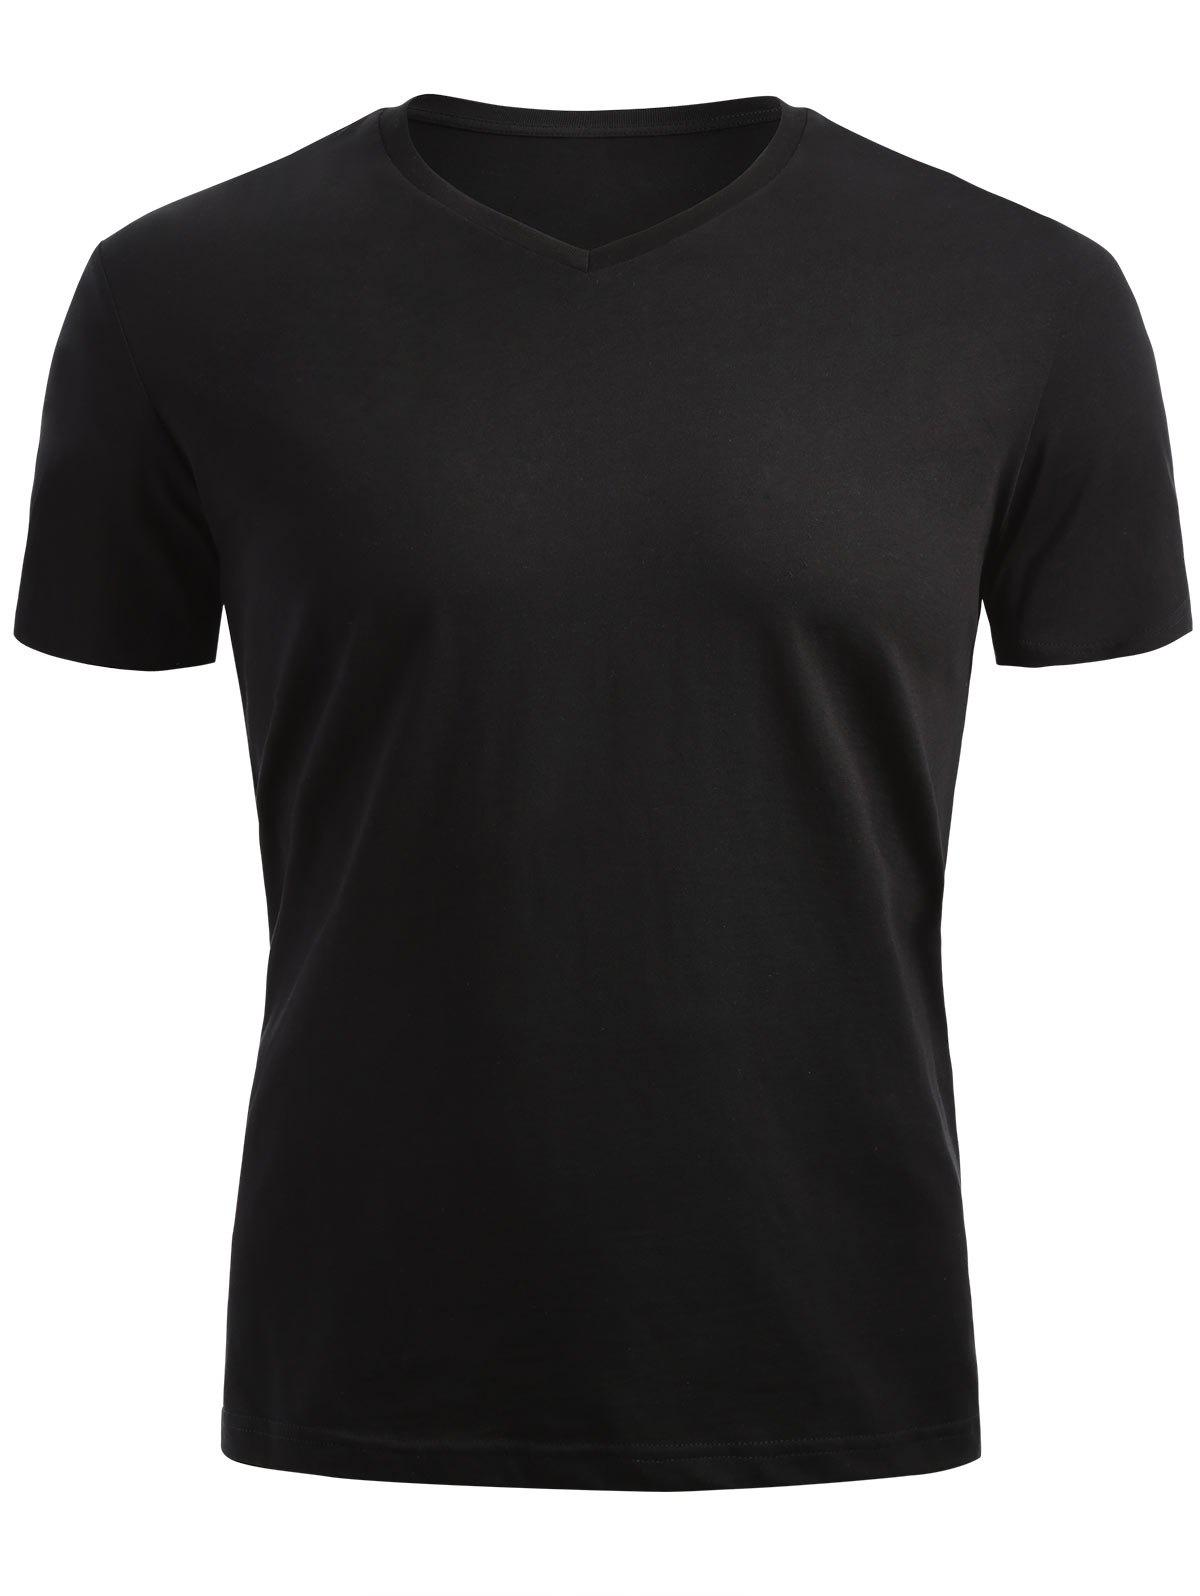 V Neck Short Sleeve T-shirt - BLACK M